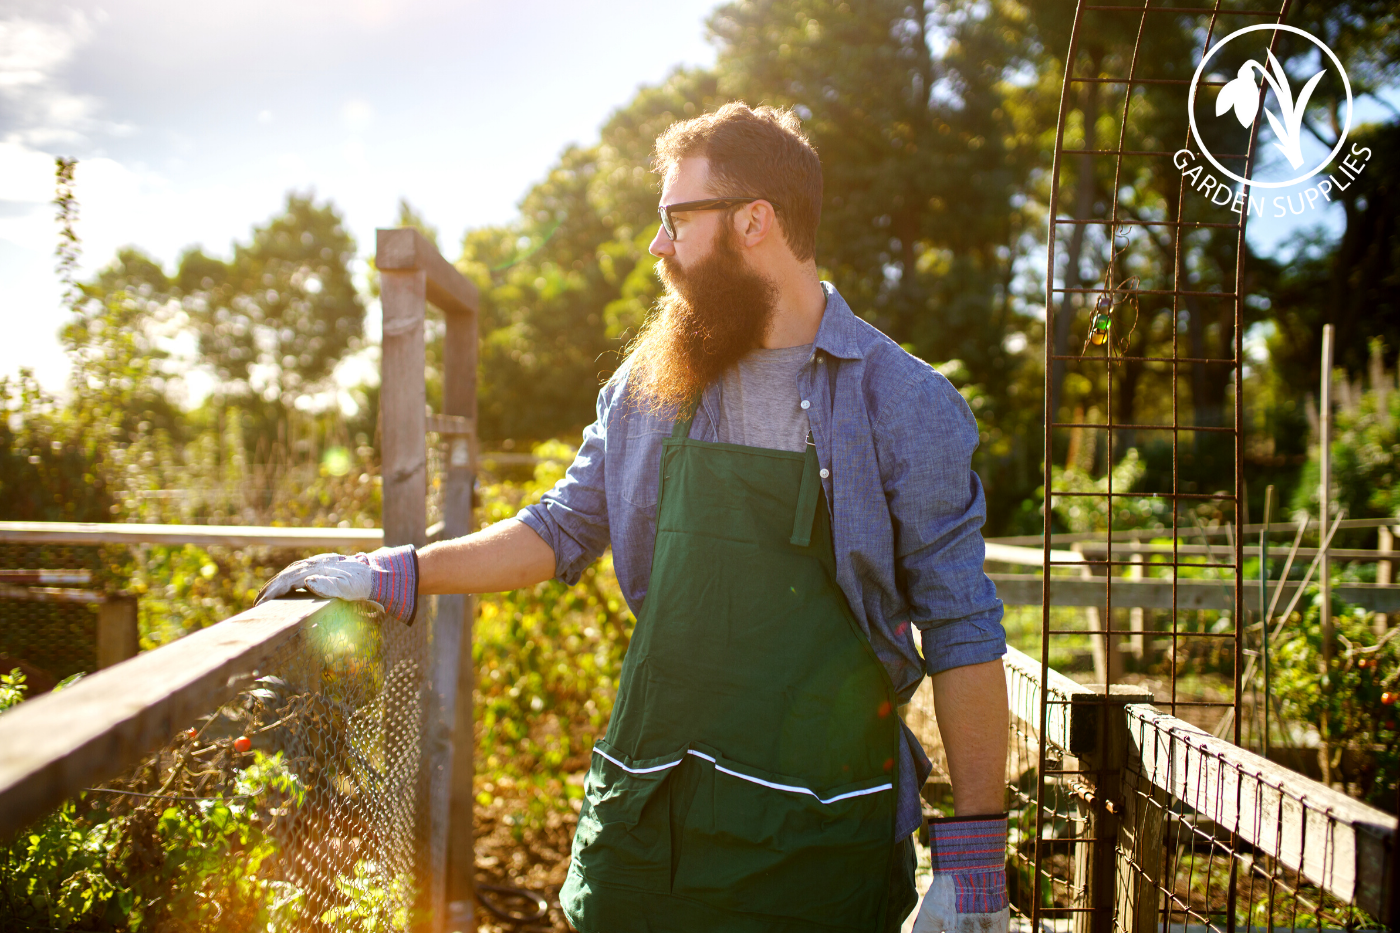 4 Ways in which Gardening can Improve your Mental Health and Well-being